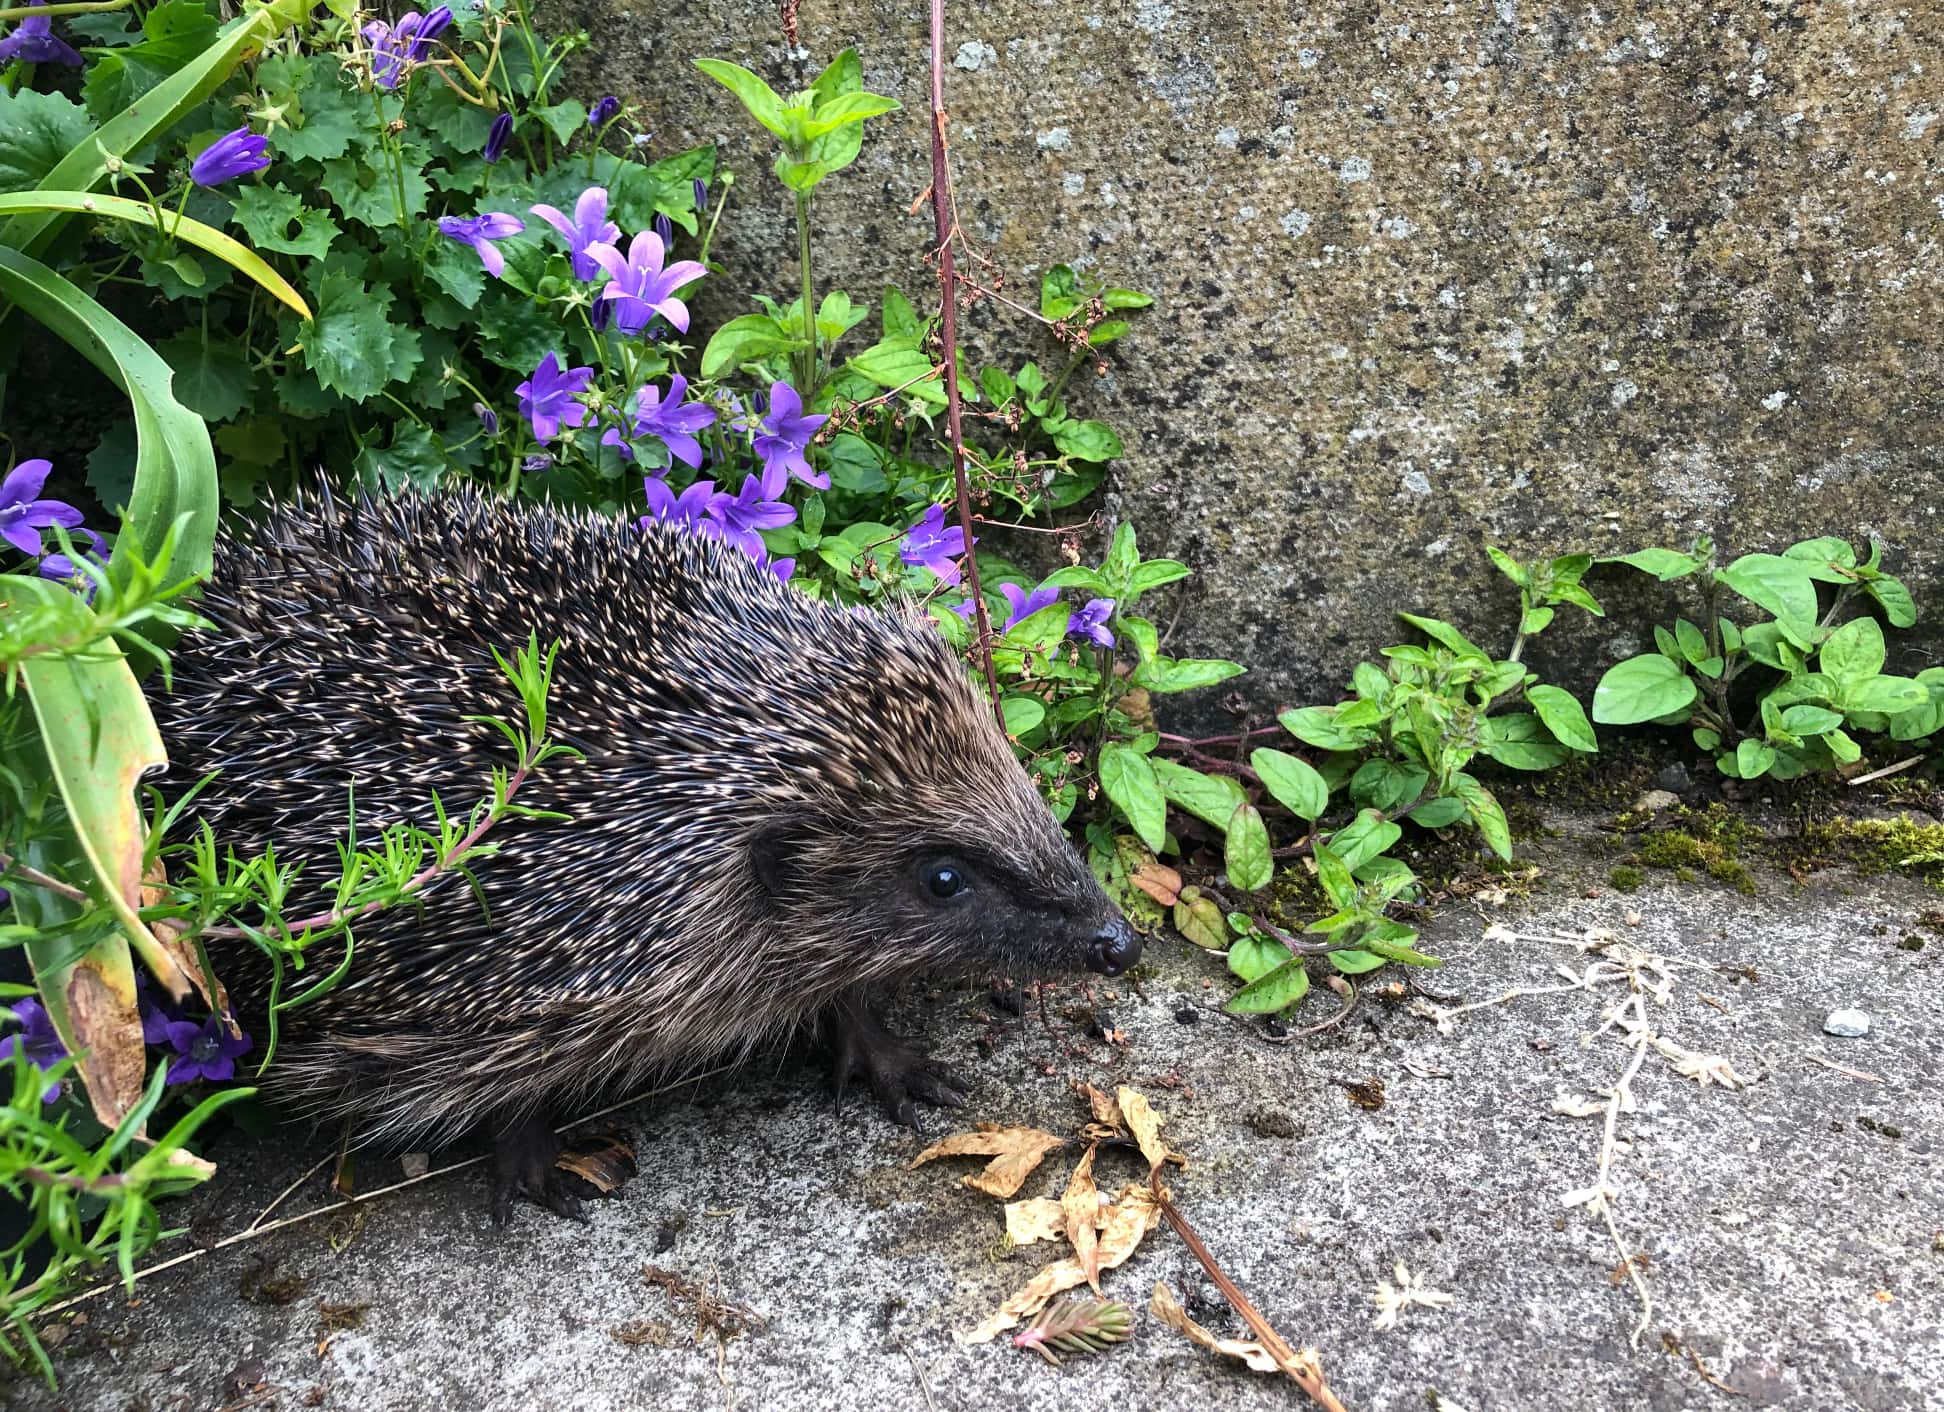 Our new resident hedgehog peeping out this morning